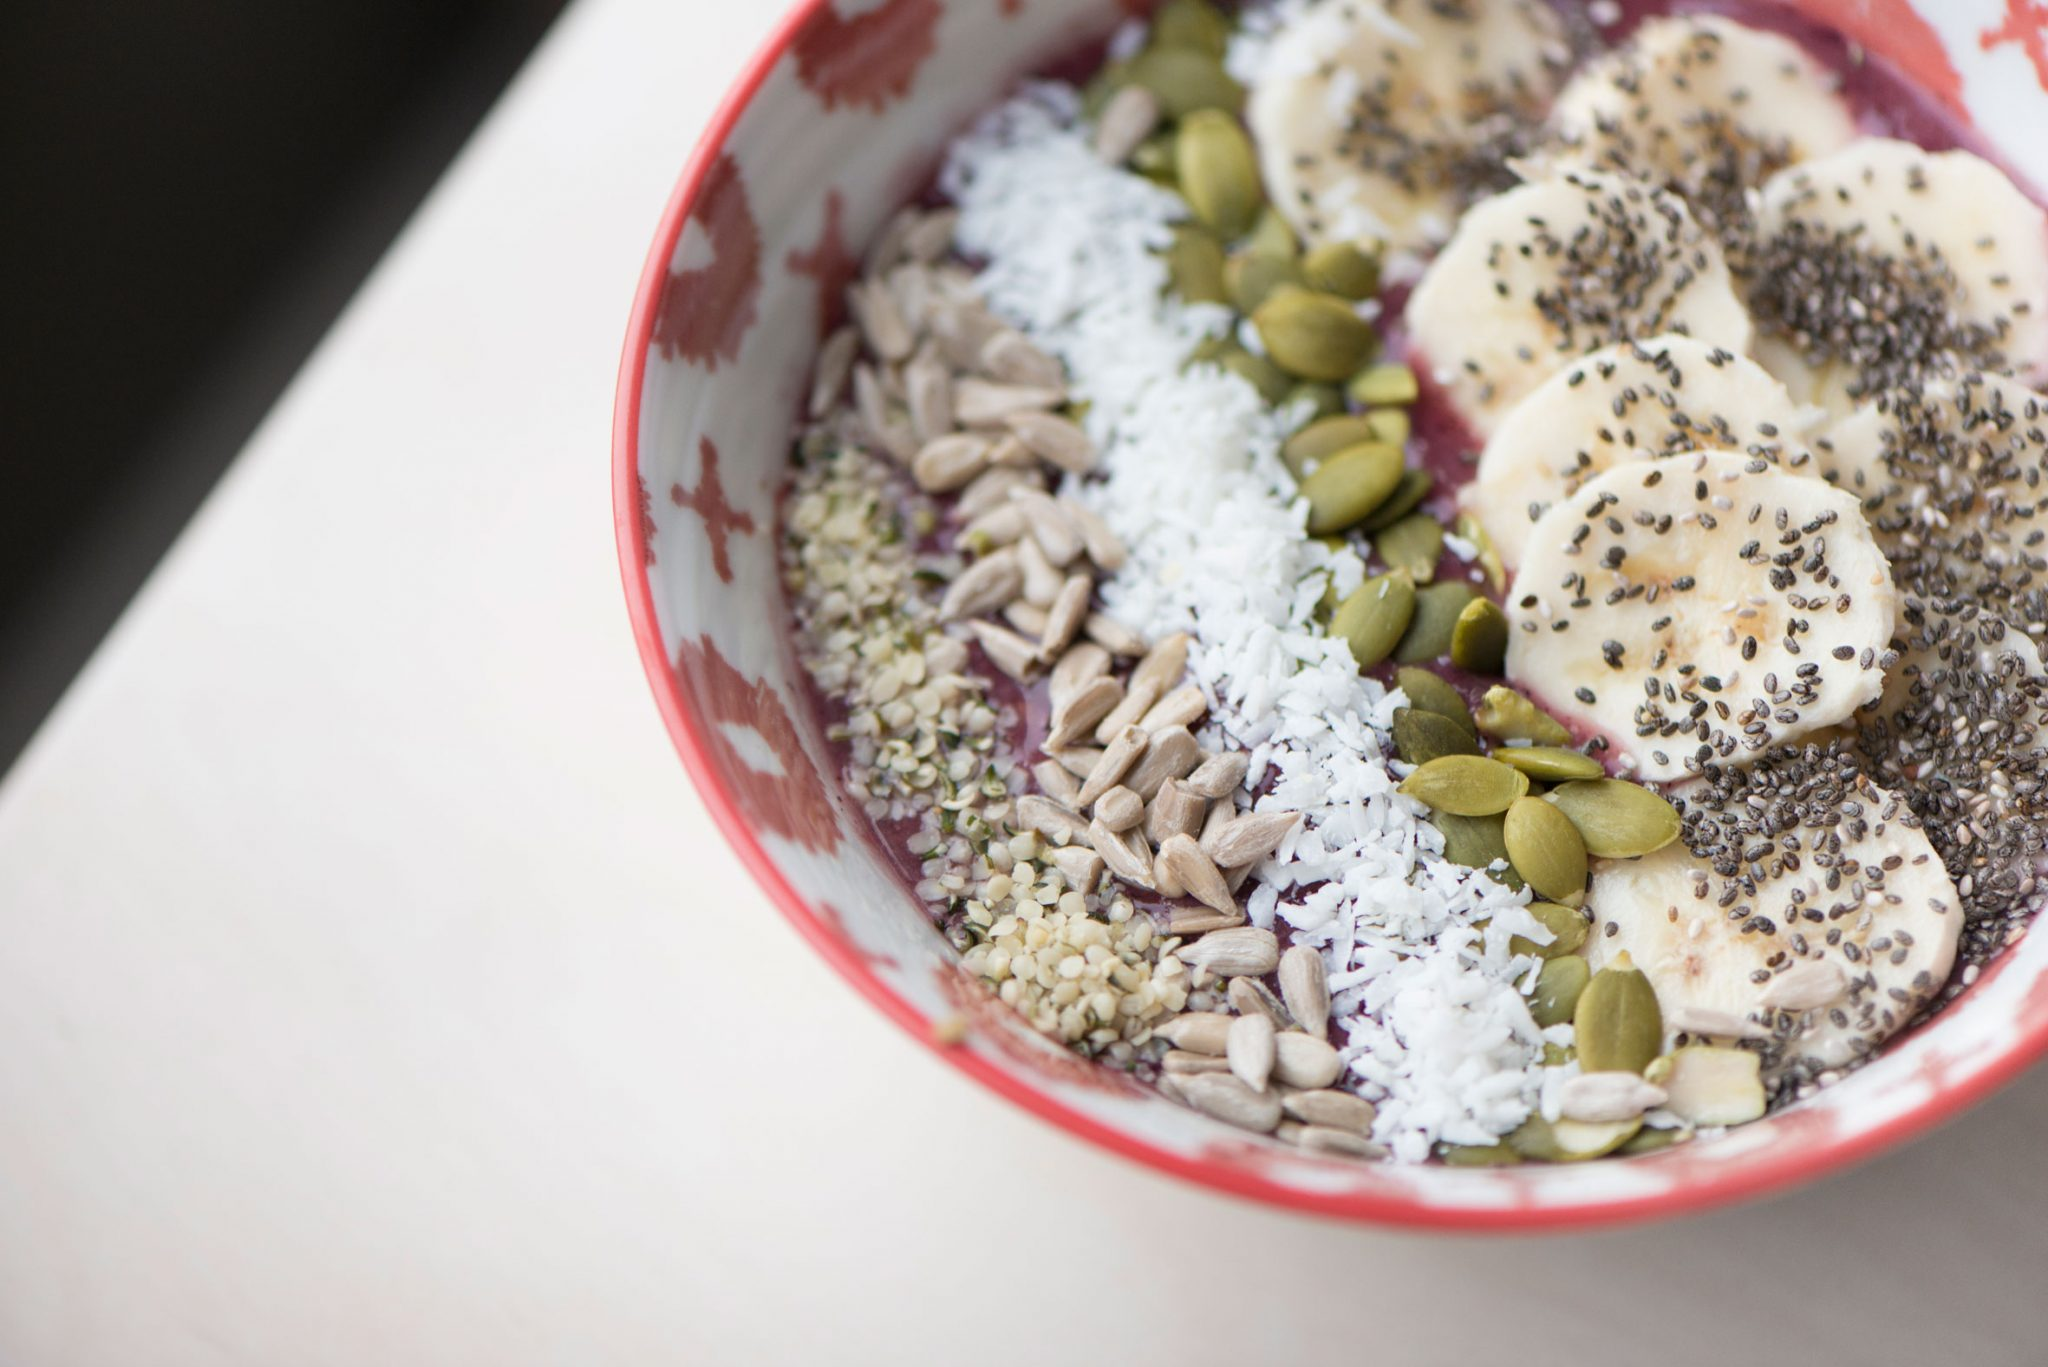 Gluten Free Vegan Smoothie Bowl Recipe